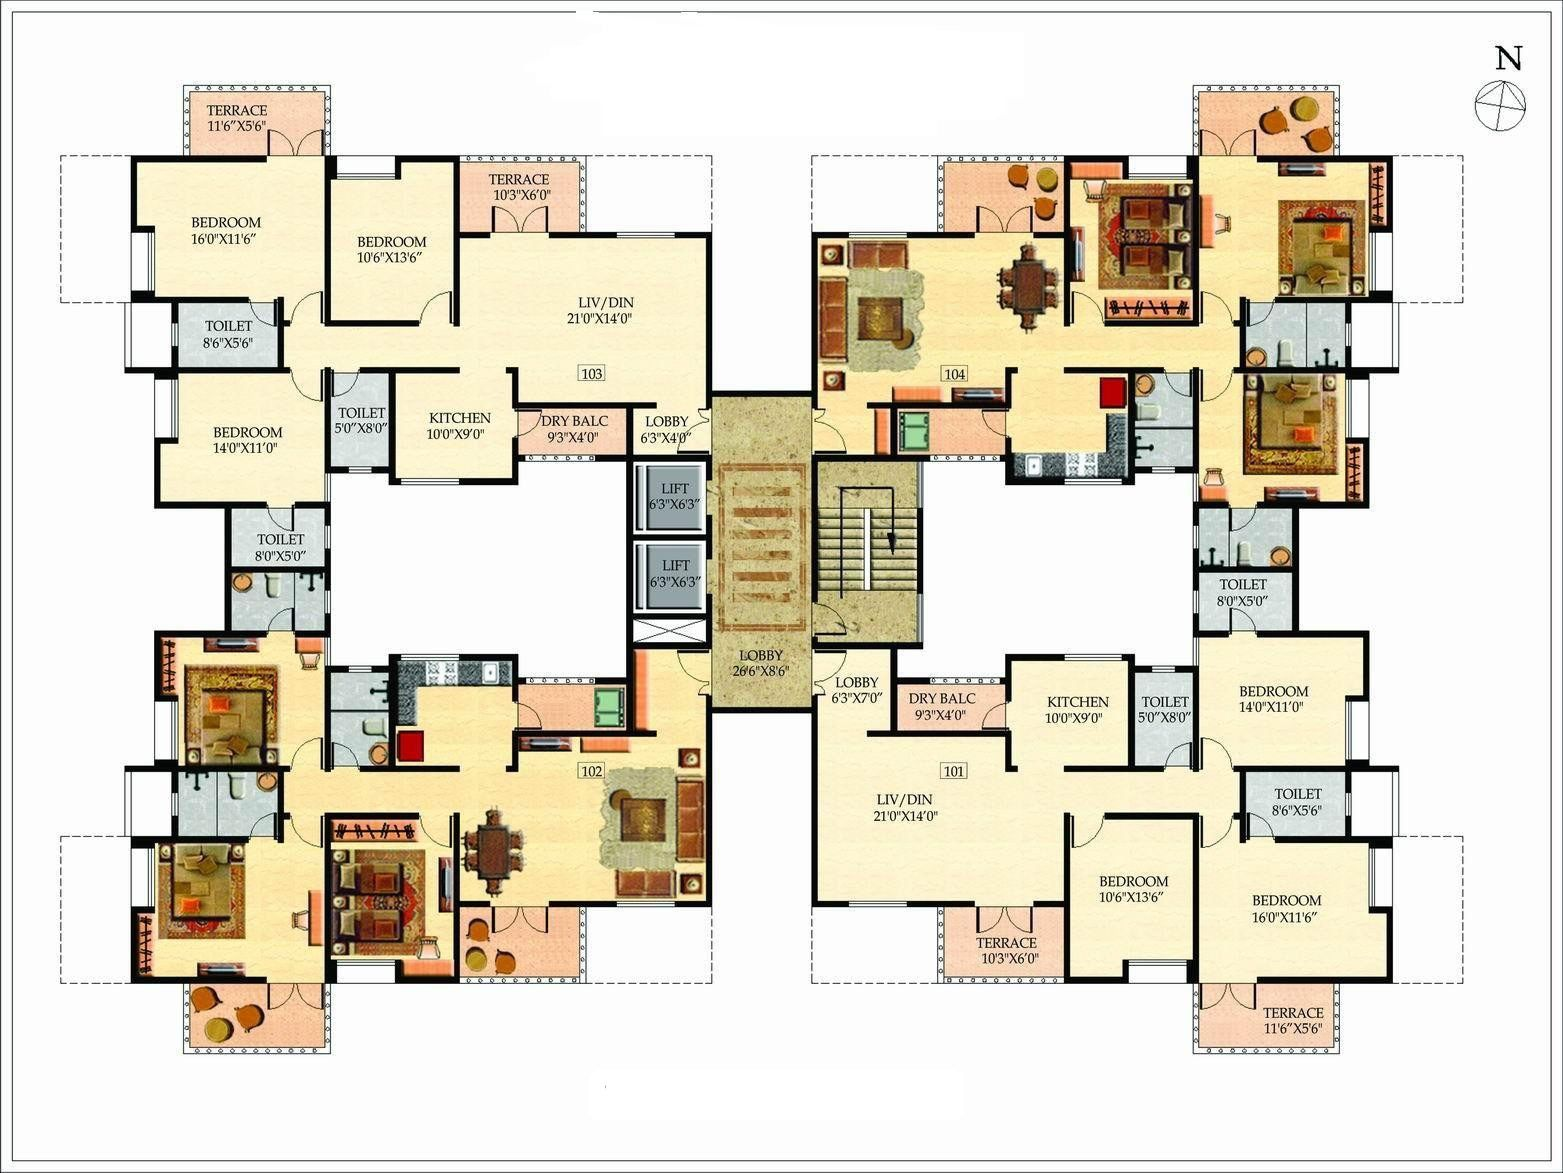 6 bedroom mansion floor plans design ideas 2017 2018 for Home designs 6 bedrooms